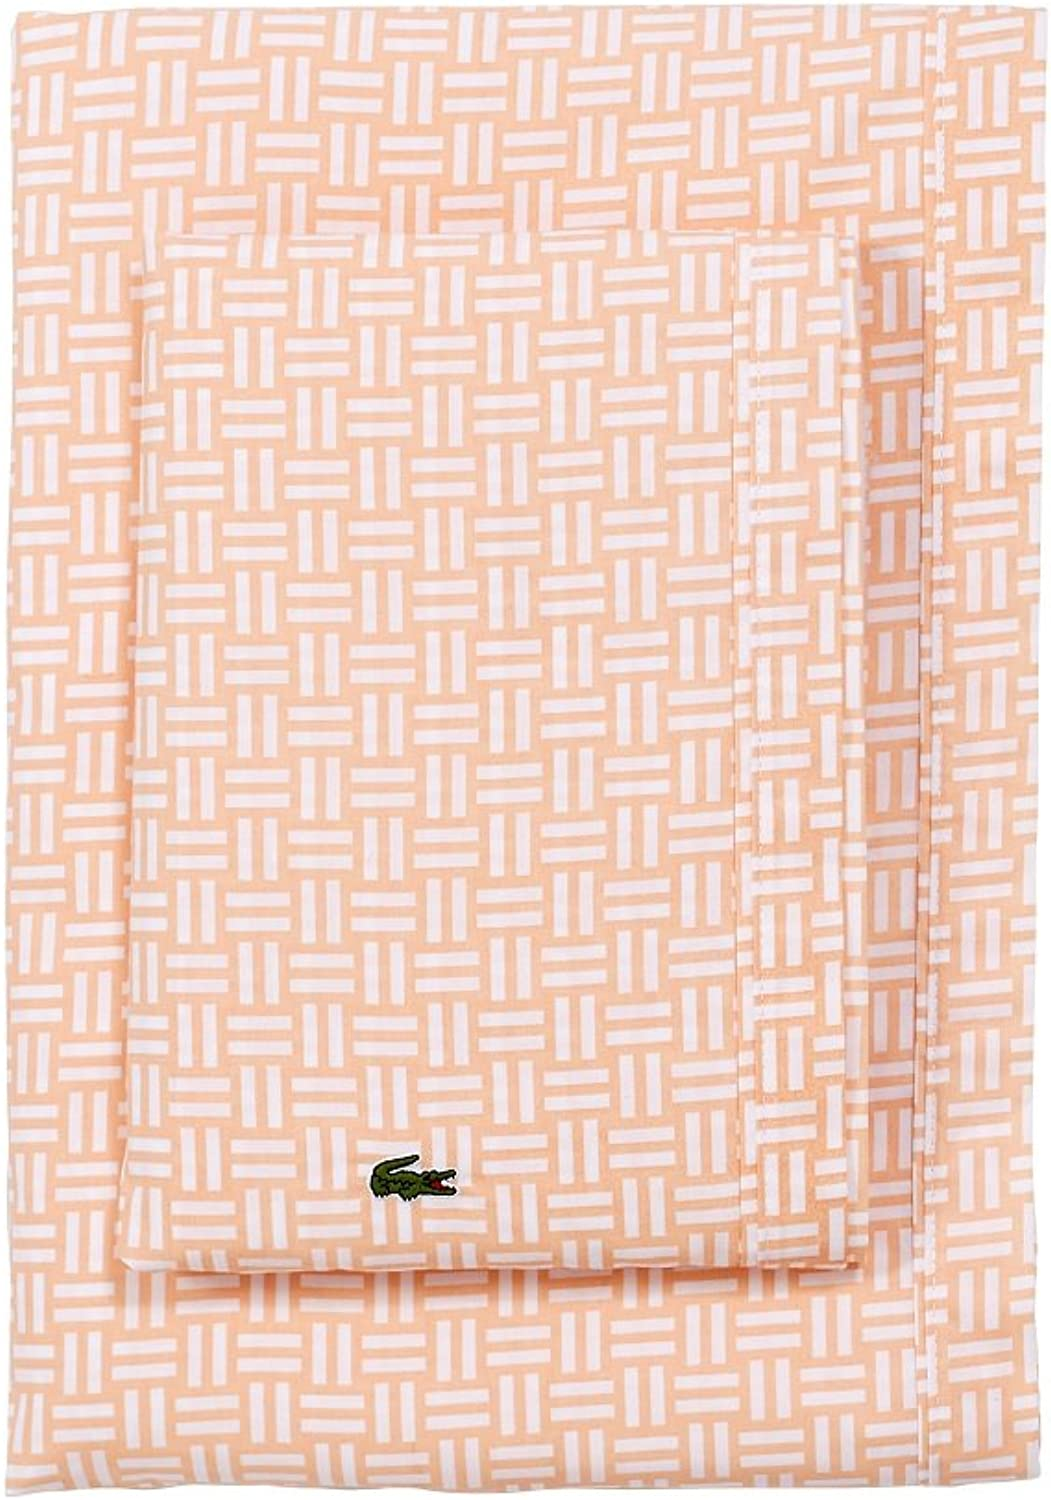 Lacoste 100% Cotton Percale Sheet Set, Basketweave Print, Iced Apricot, Full